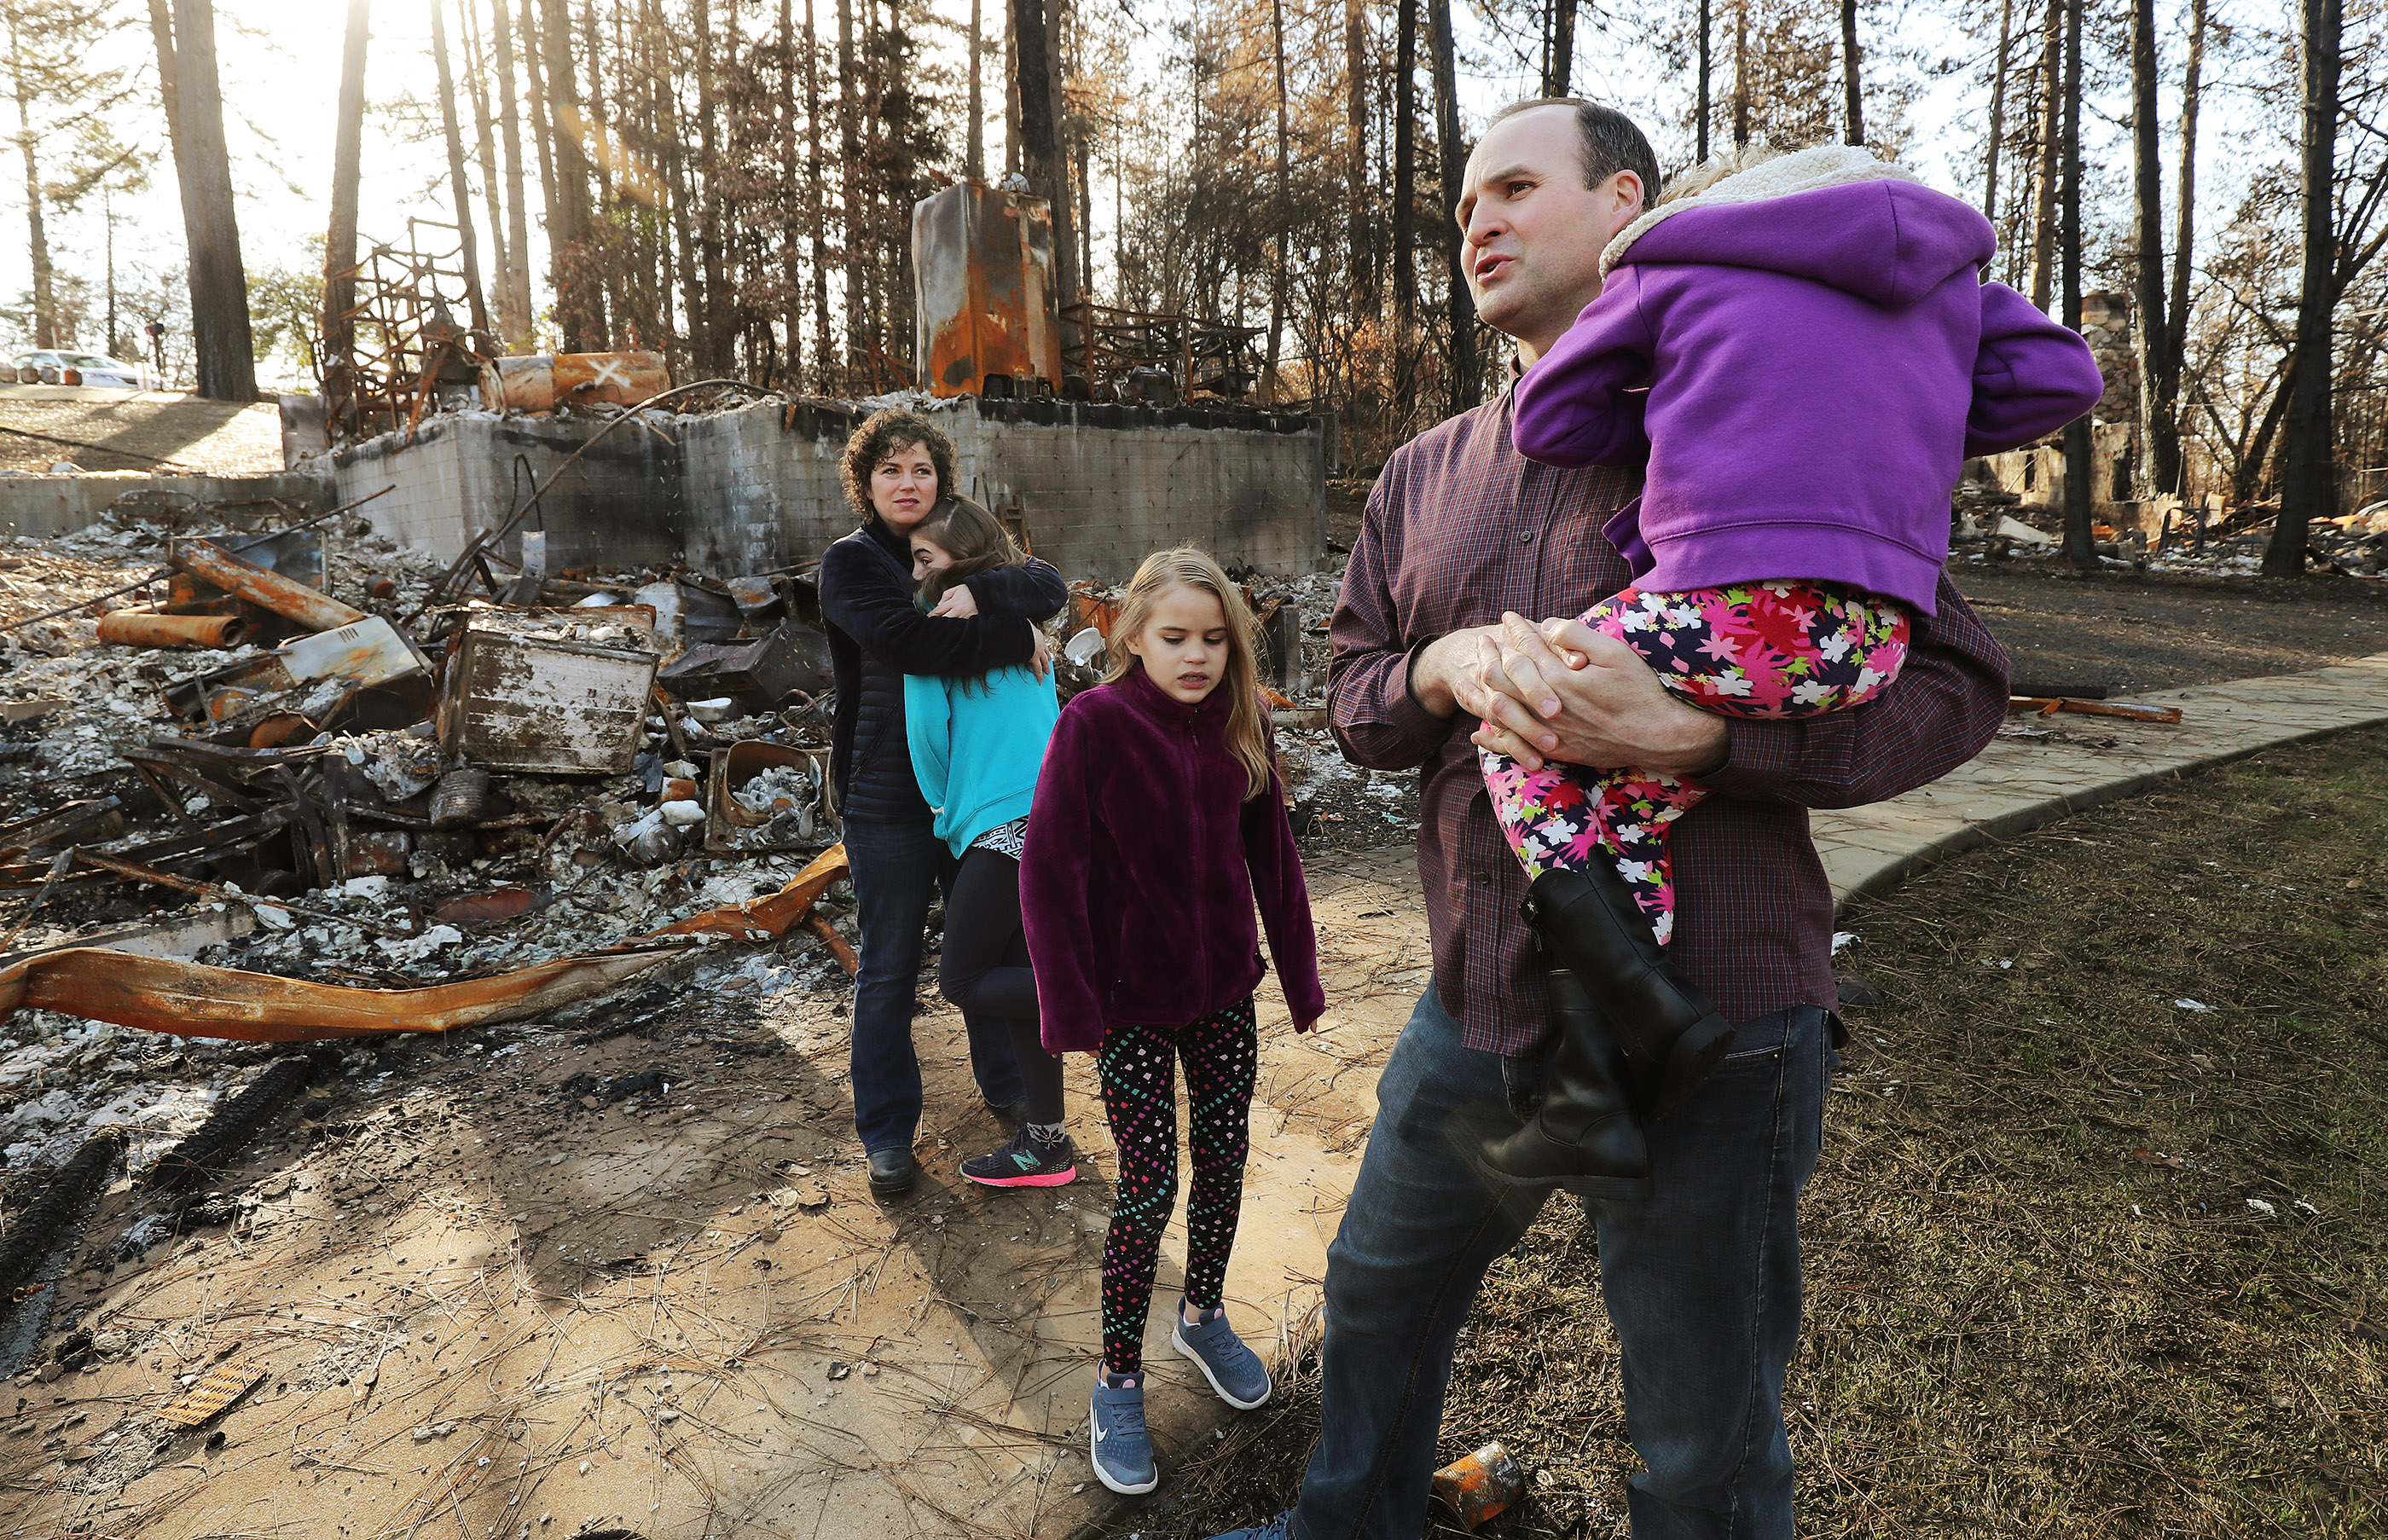 Jeremy and Brynn Chatfield and their children McKell, Aylee and DeLynn survey their destroyed home in Paradise, California, on Saturday, Jan. 12, 2019, two months after the Camp Fire destroyed more than 18,000 homes and businesses.